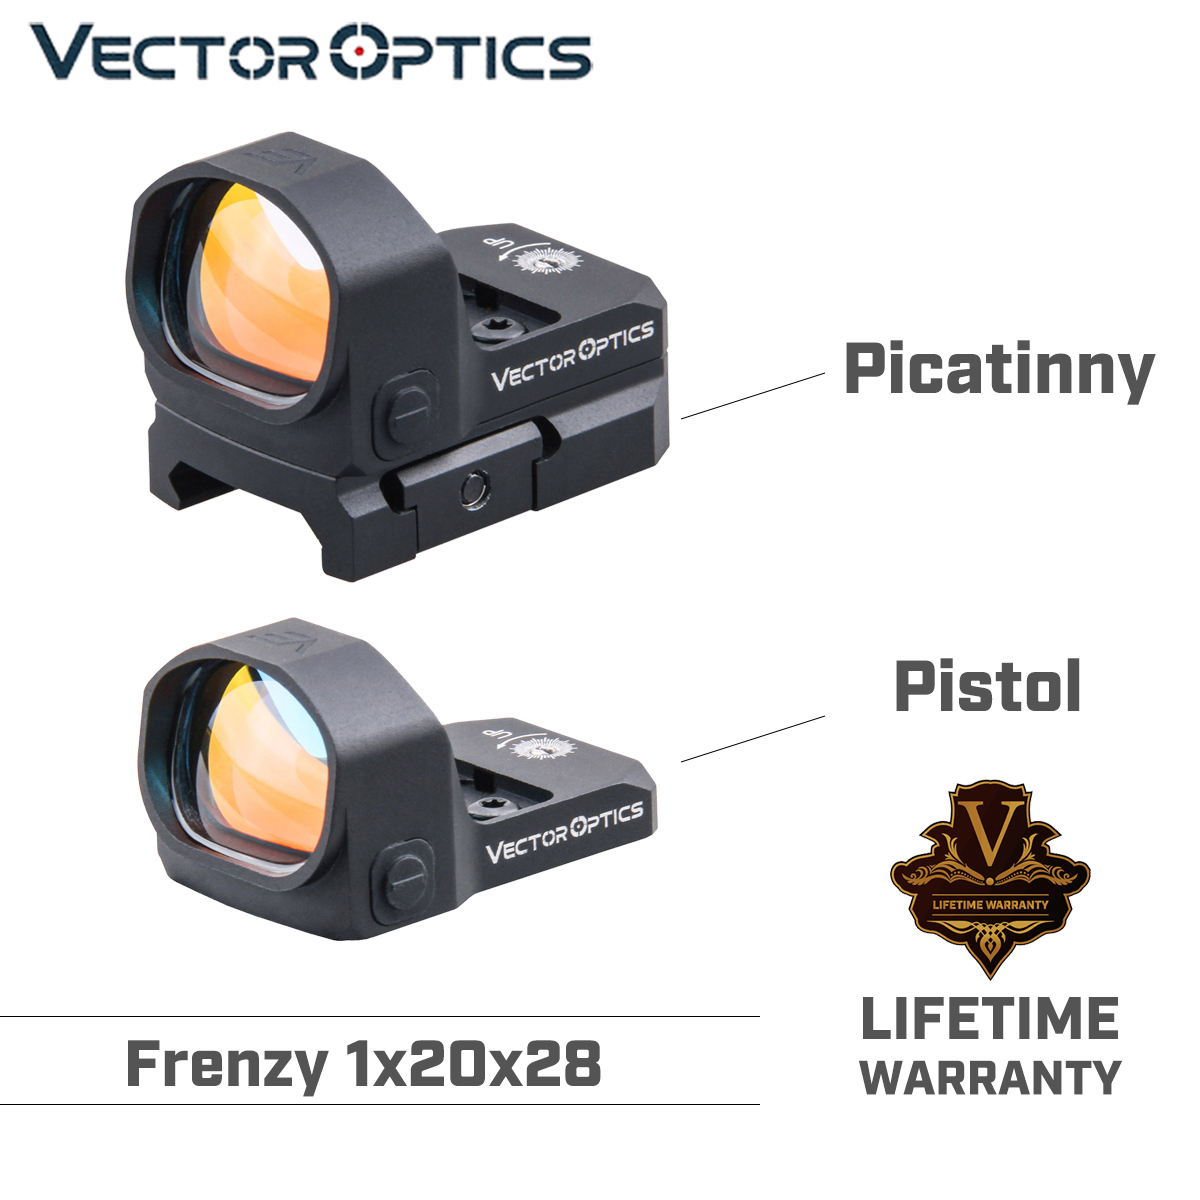 Vector Optics Frenzy 1x20x28 Red Dot Scope Handgun Pistol Sight IPX6 Water Proof Fit For GLOCK 17 19 9mm AR15 M4 AK Shotgun 12ga